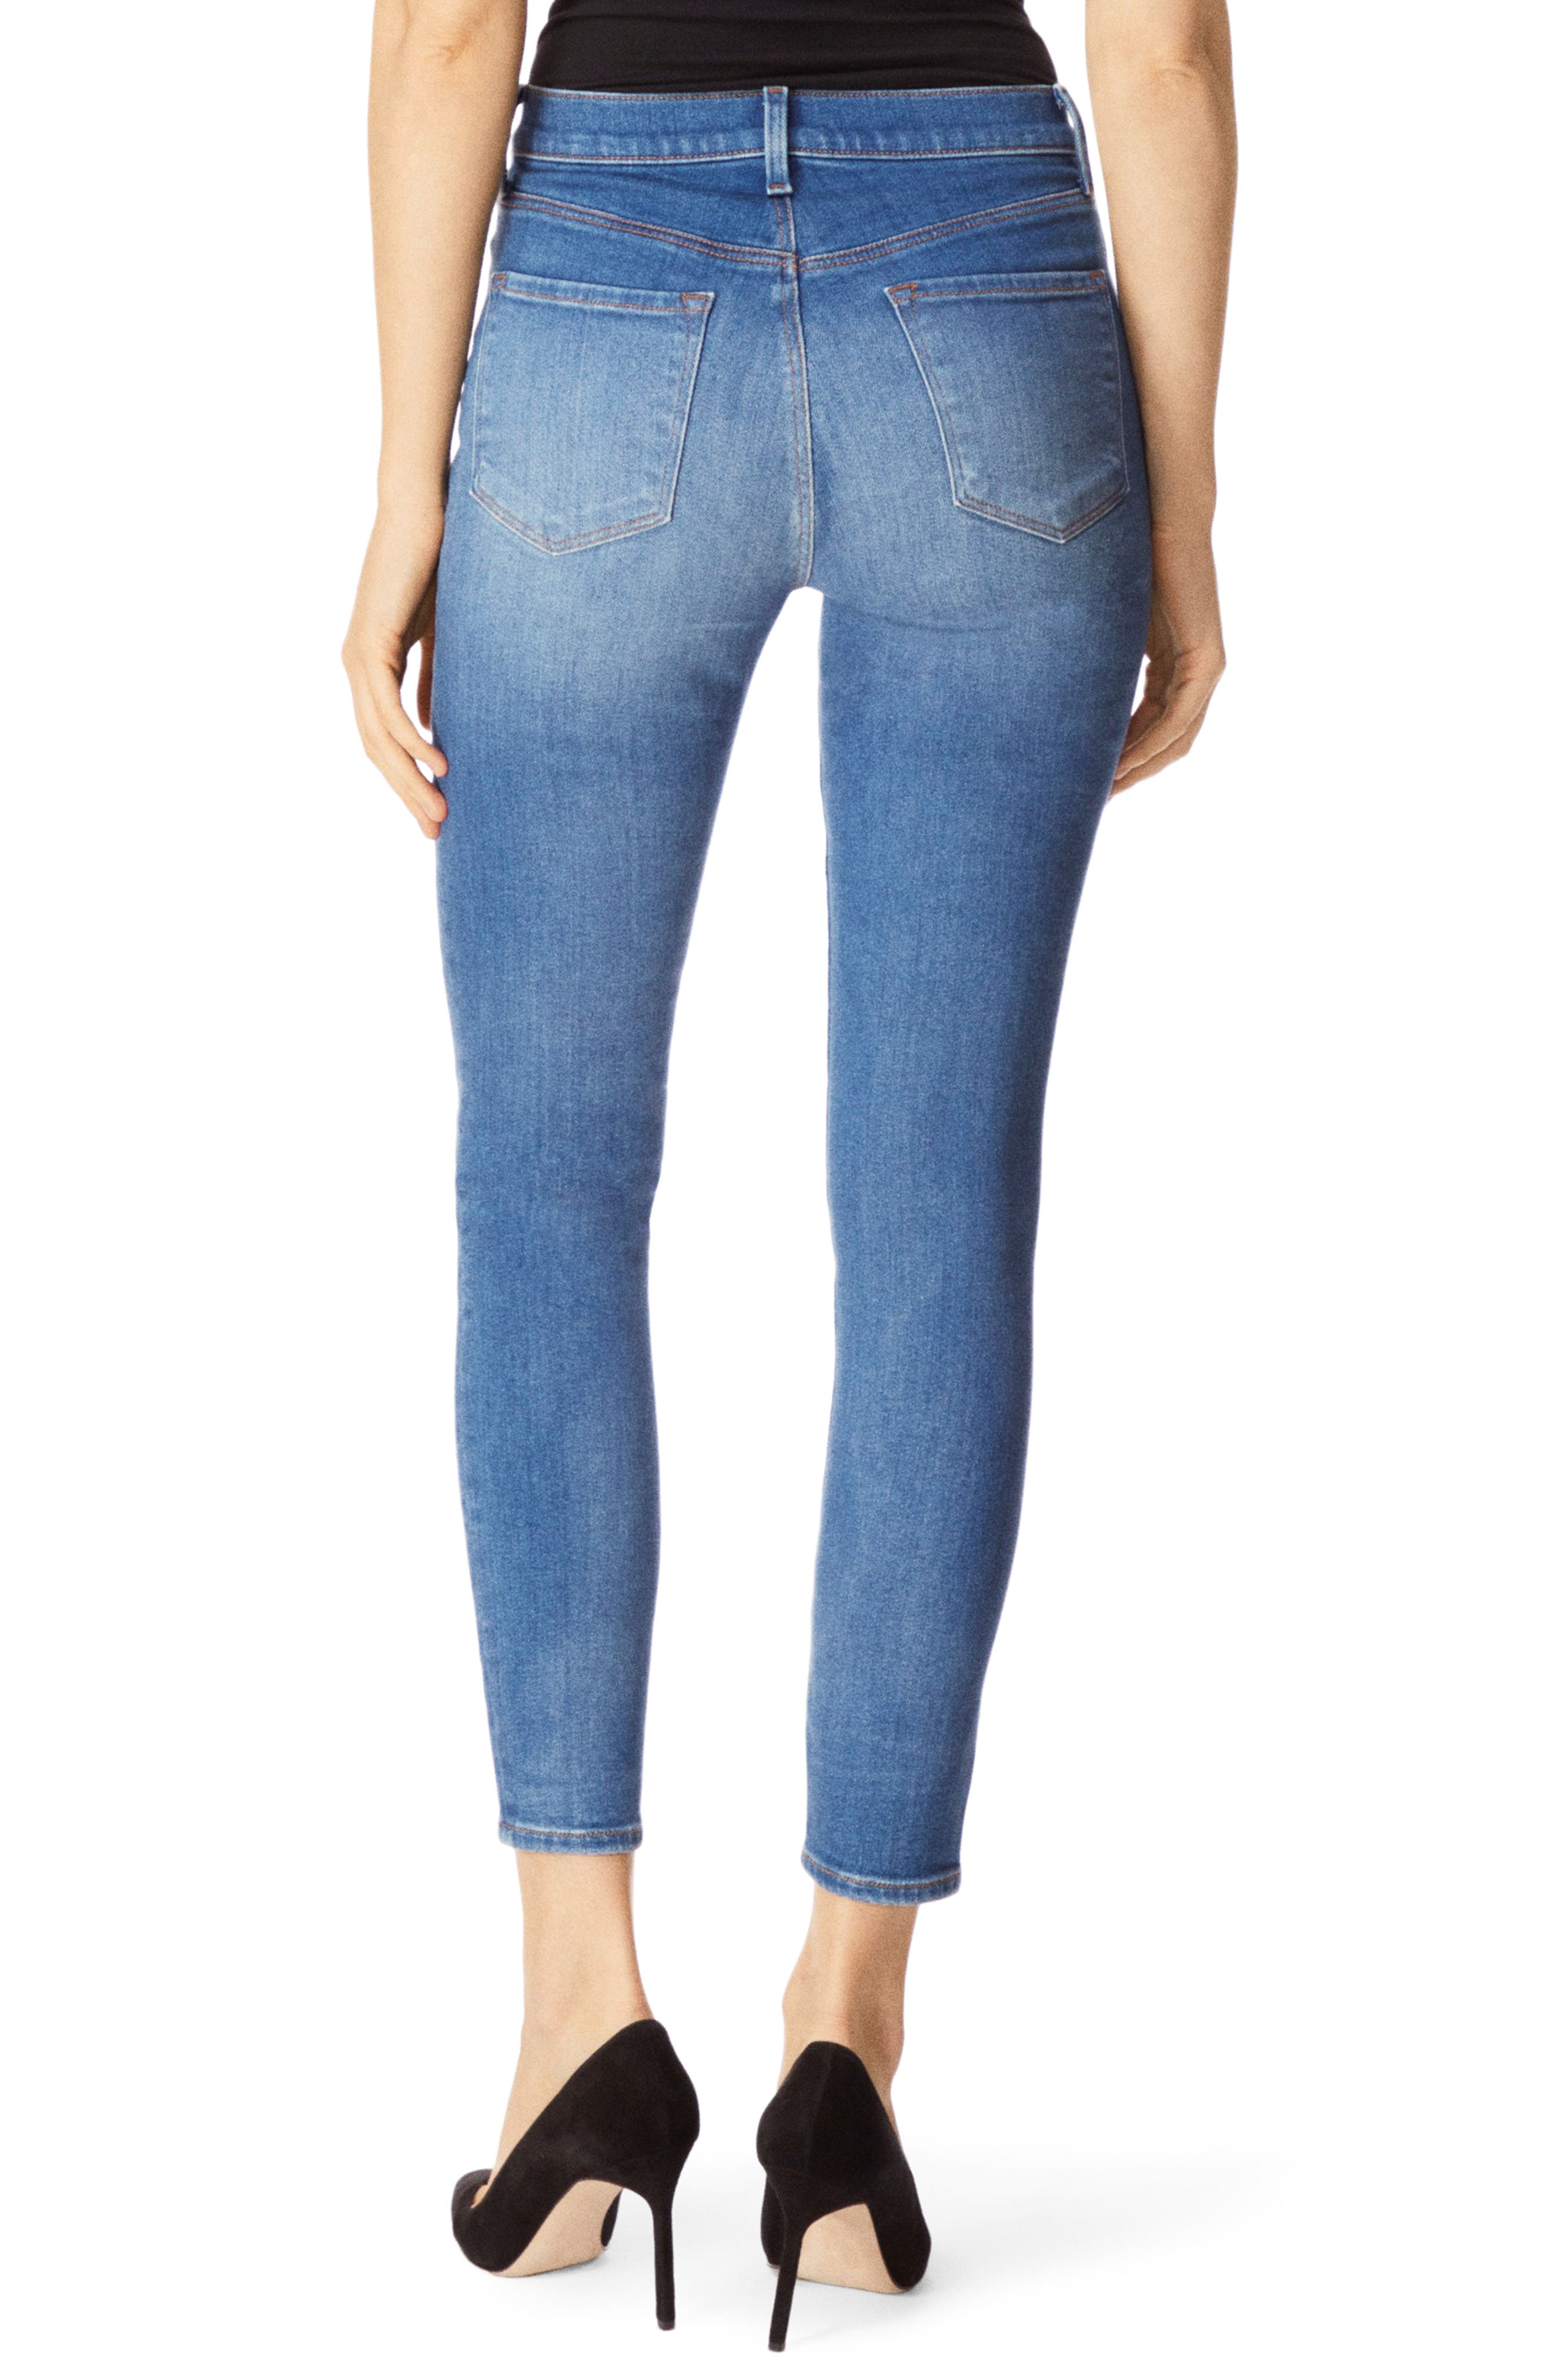 Alana High Waist Crop Skinny Jeans,                             Alternate thumbnail 2, color,                             RADIATE